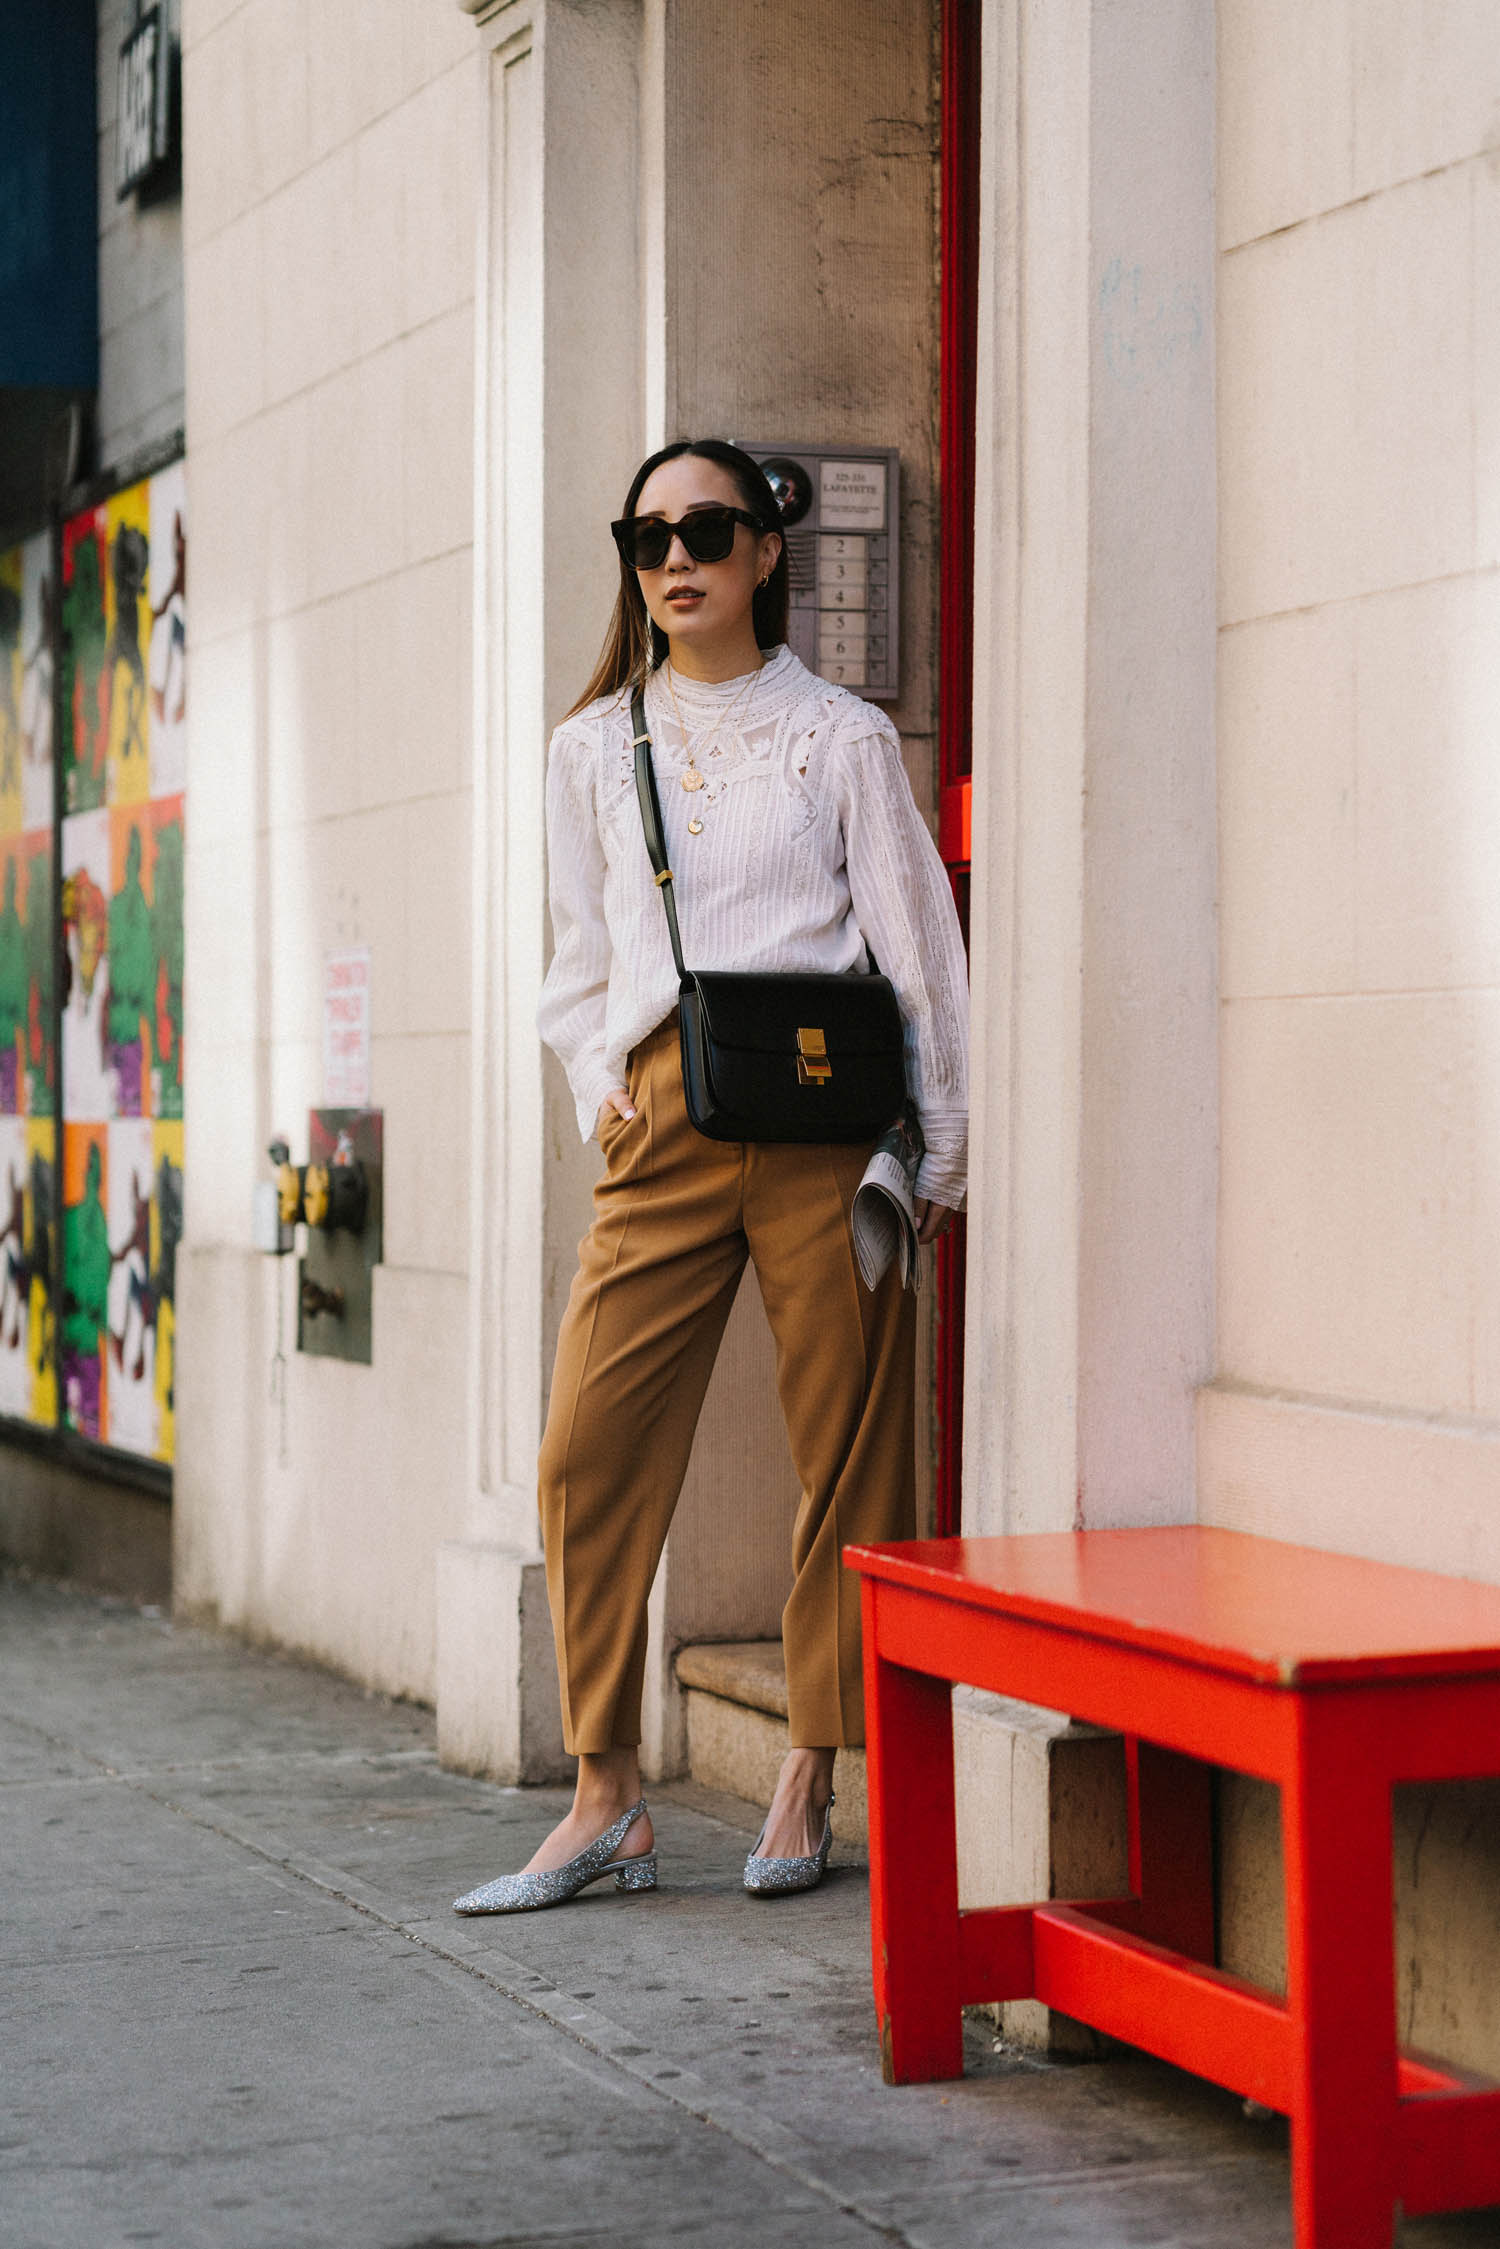 SEA New York Top ,  Aritzia Pants , Mansur Gavriel Shoes, Celine Bag, Celine Sunglasses